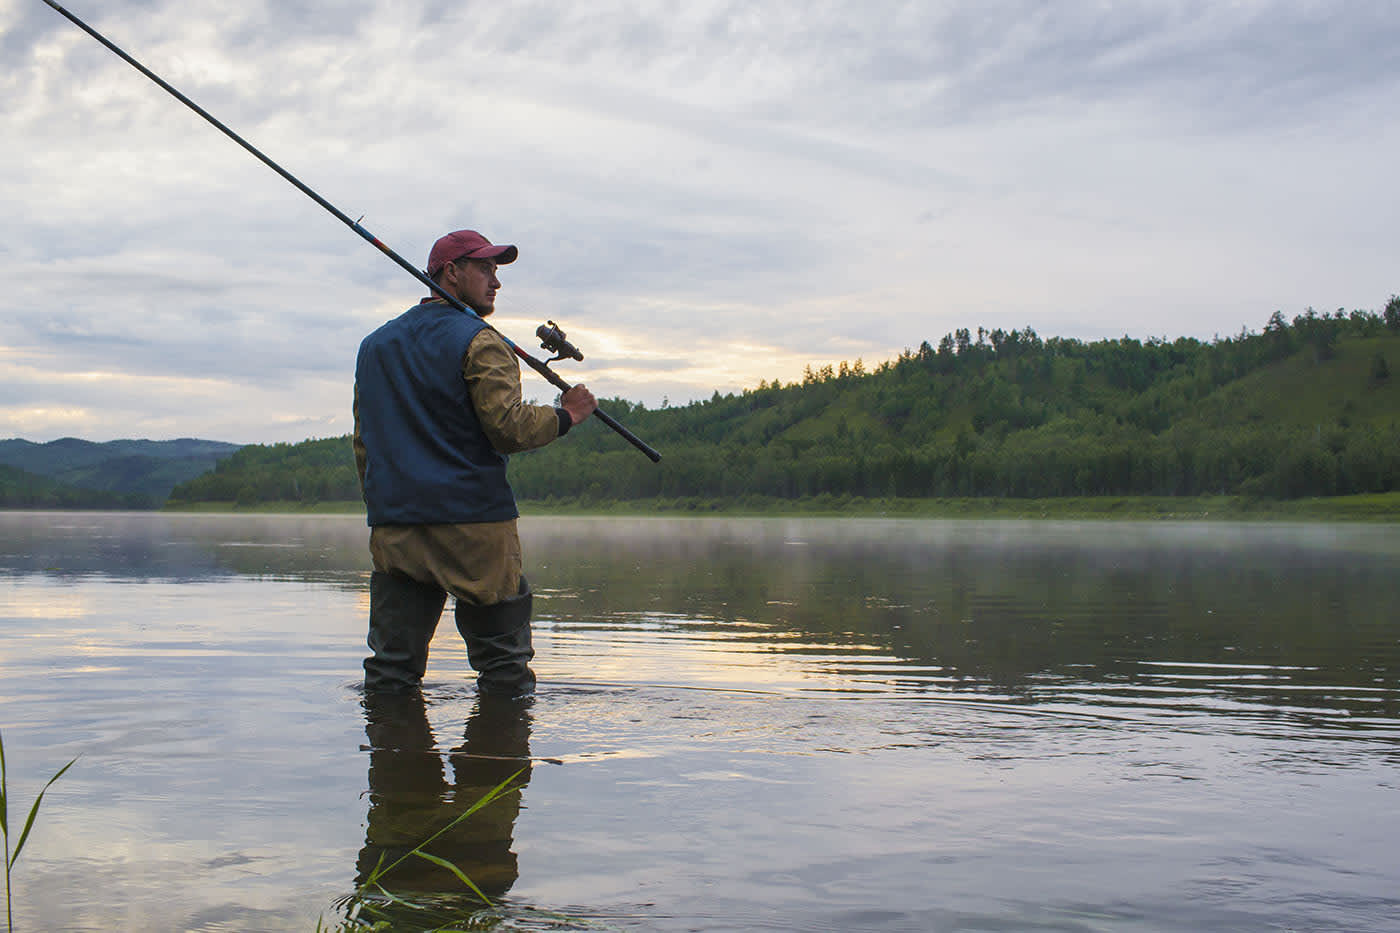 Hero Image Fish and Game Warden: Career Guide